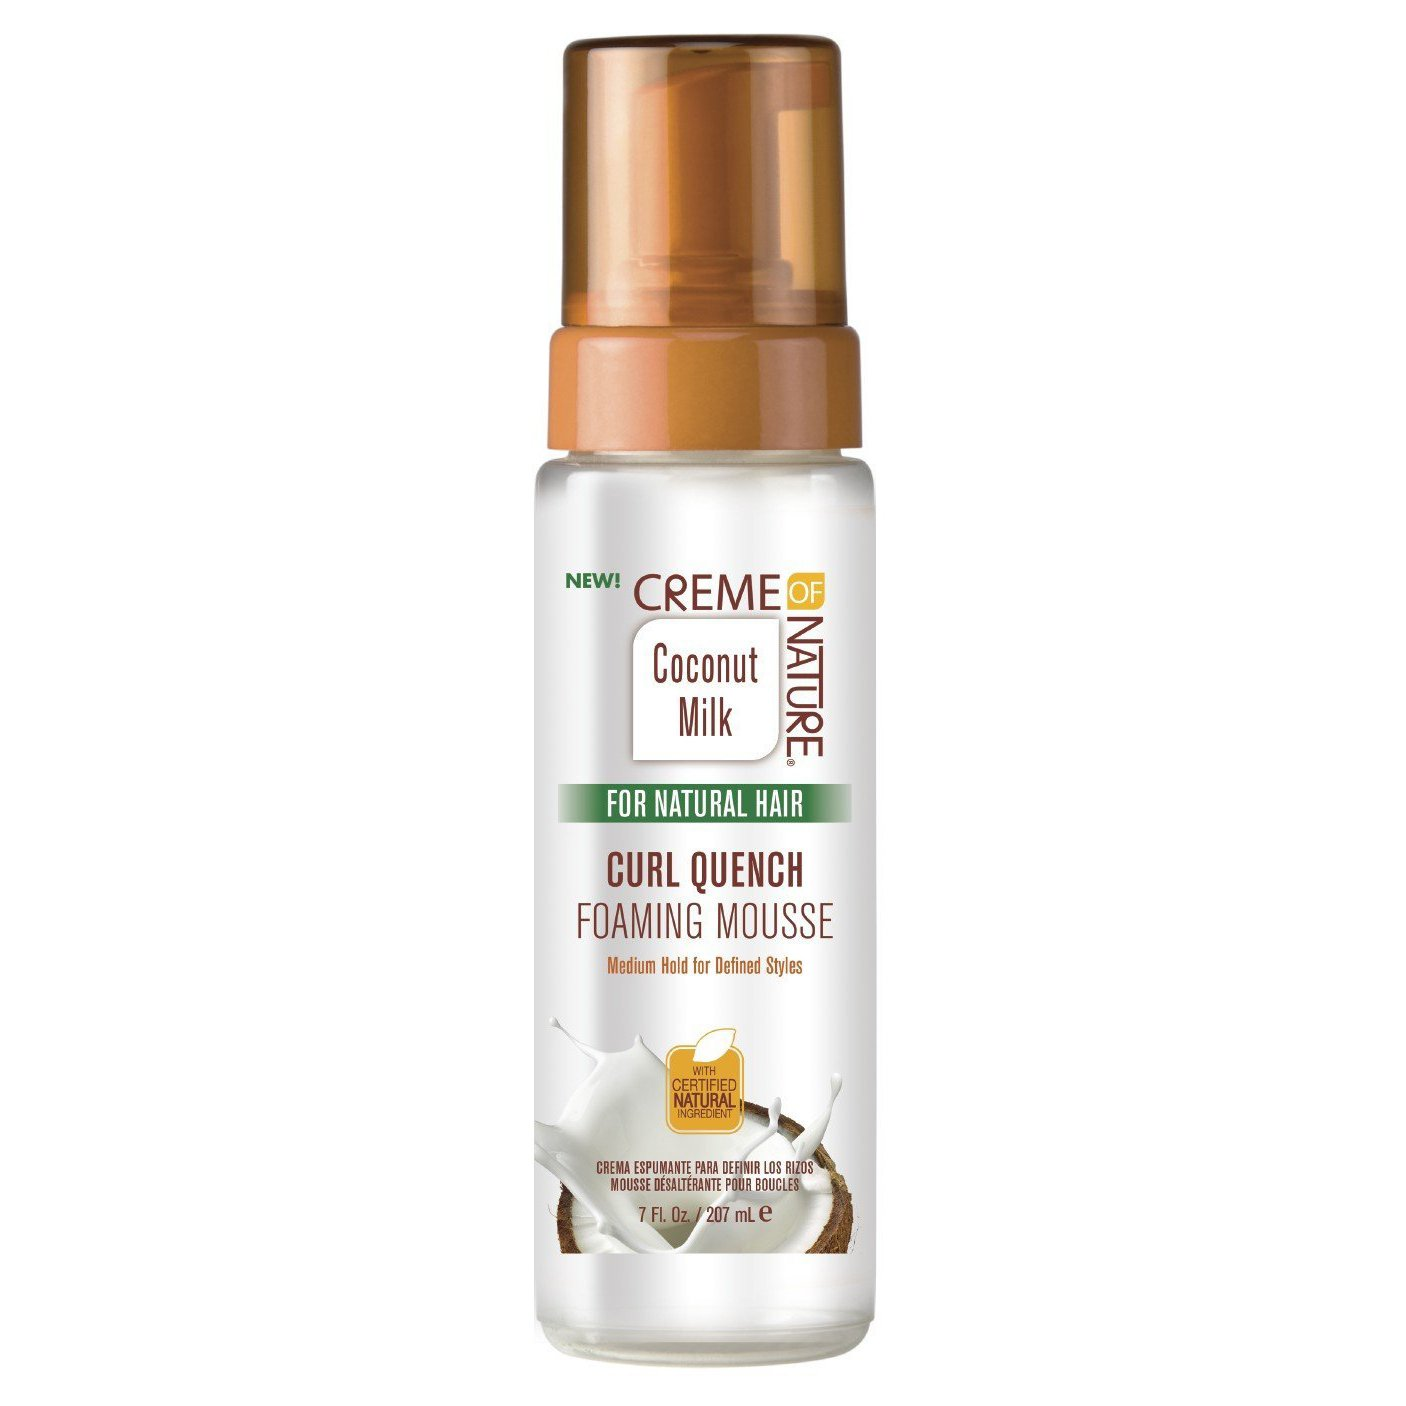 Creme Of Nature Coconut Milk Curl Quench Foaming Mousse 7 Ounce (207ml) Beautyge Brands USA